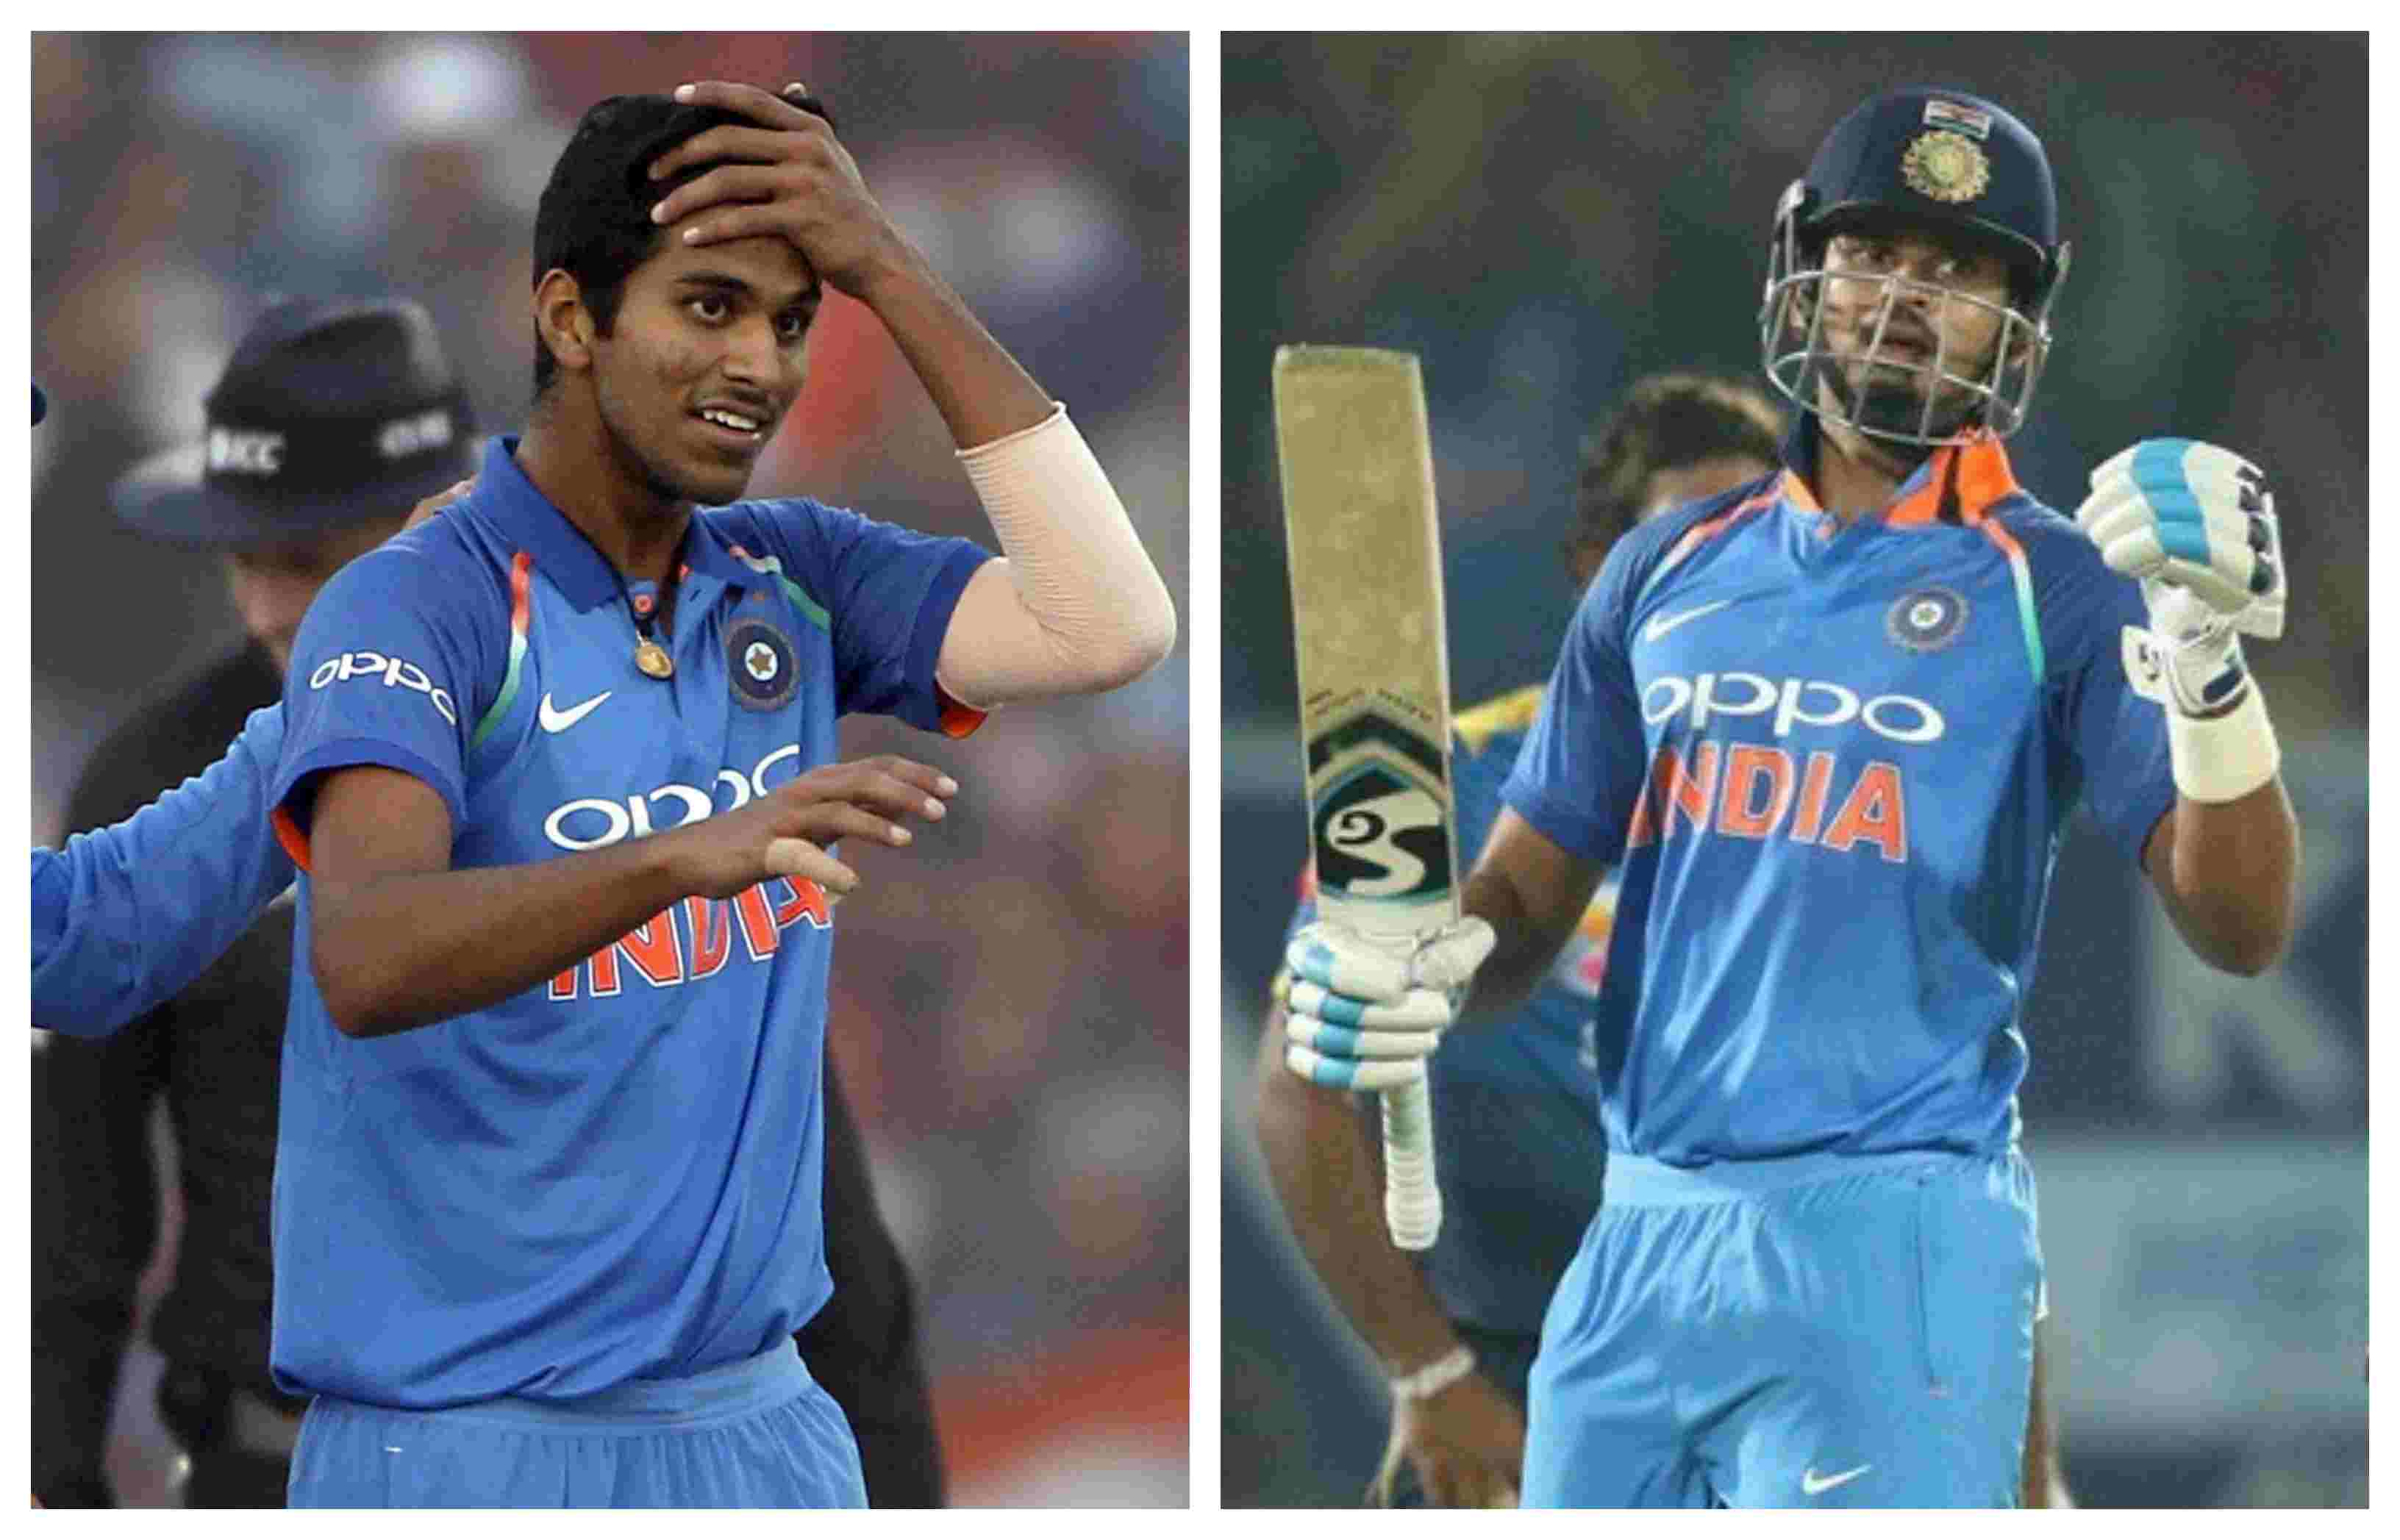 Iyer and Sundar may get a go in the third T20I